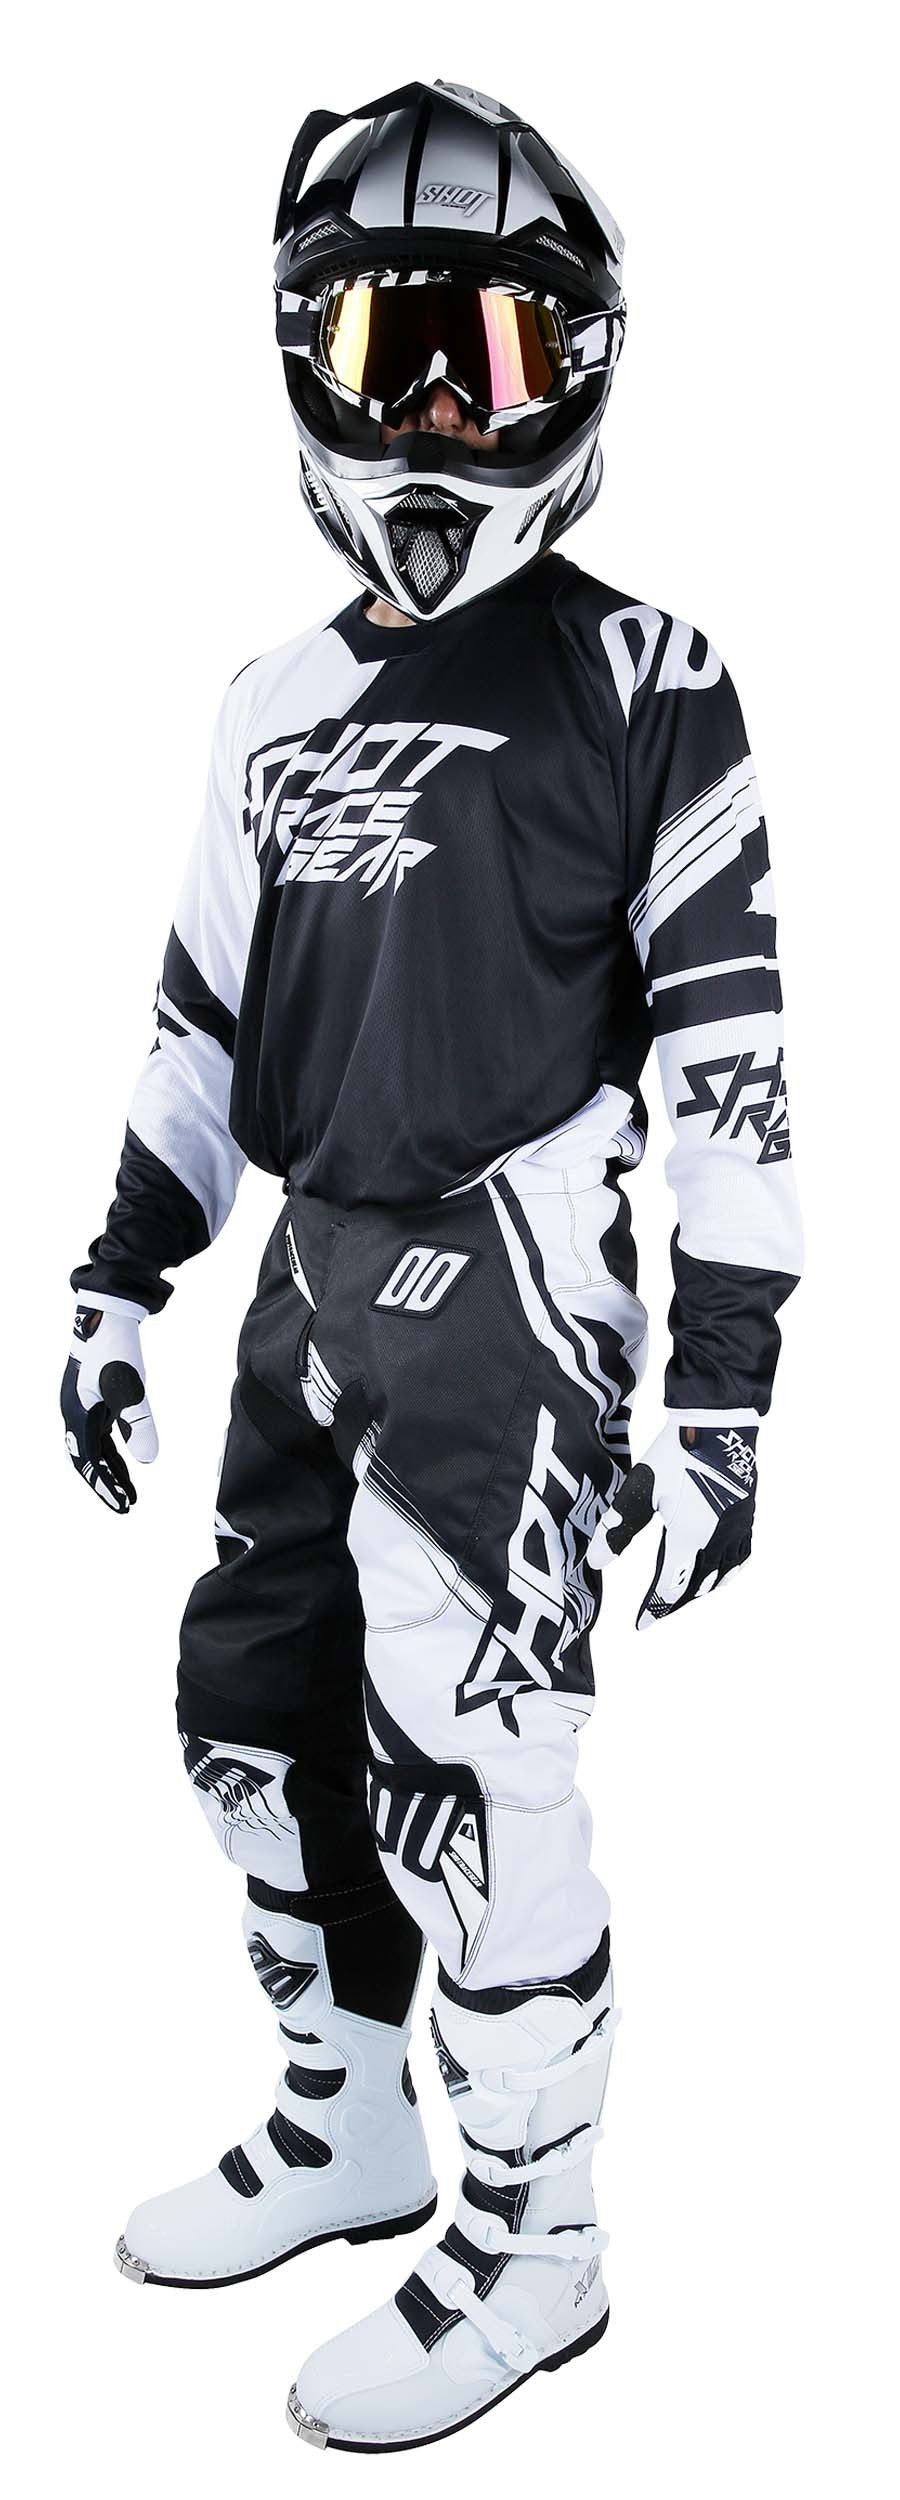 Shot MX 2017 | Contact Claw Motocross Motorcycle Race Gear